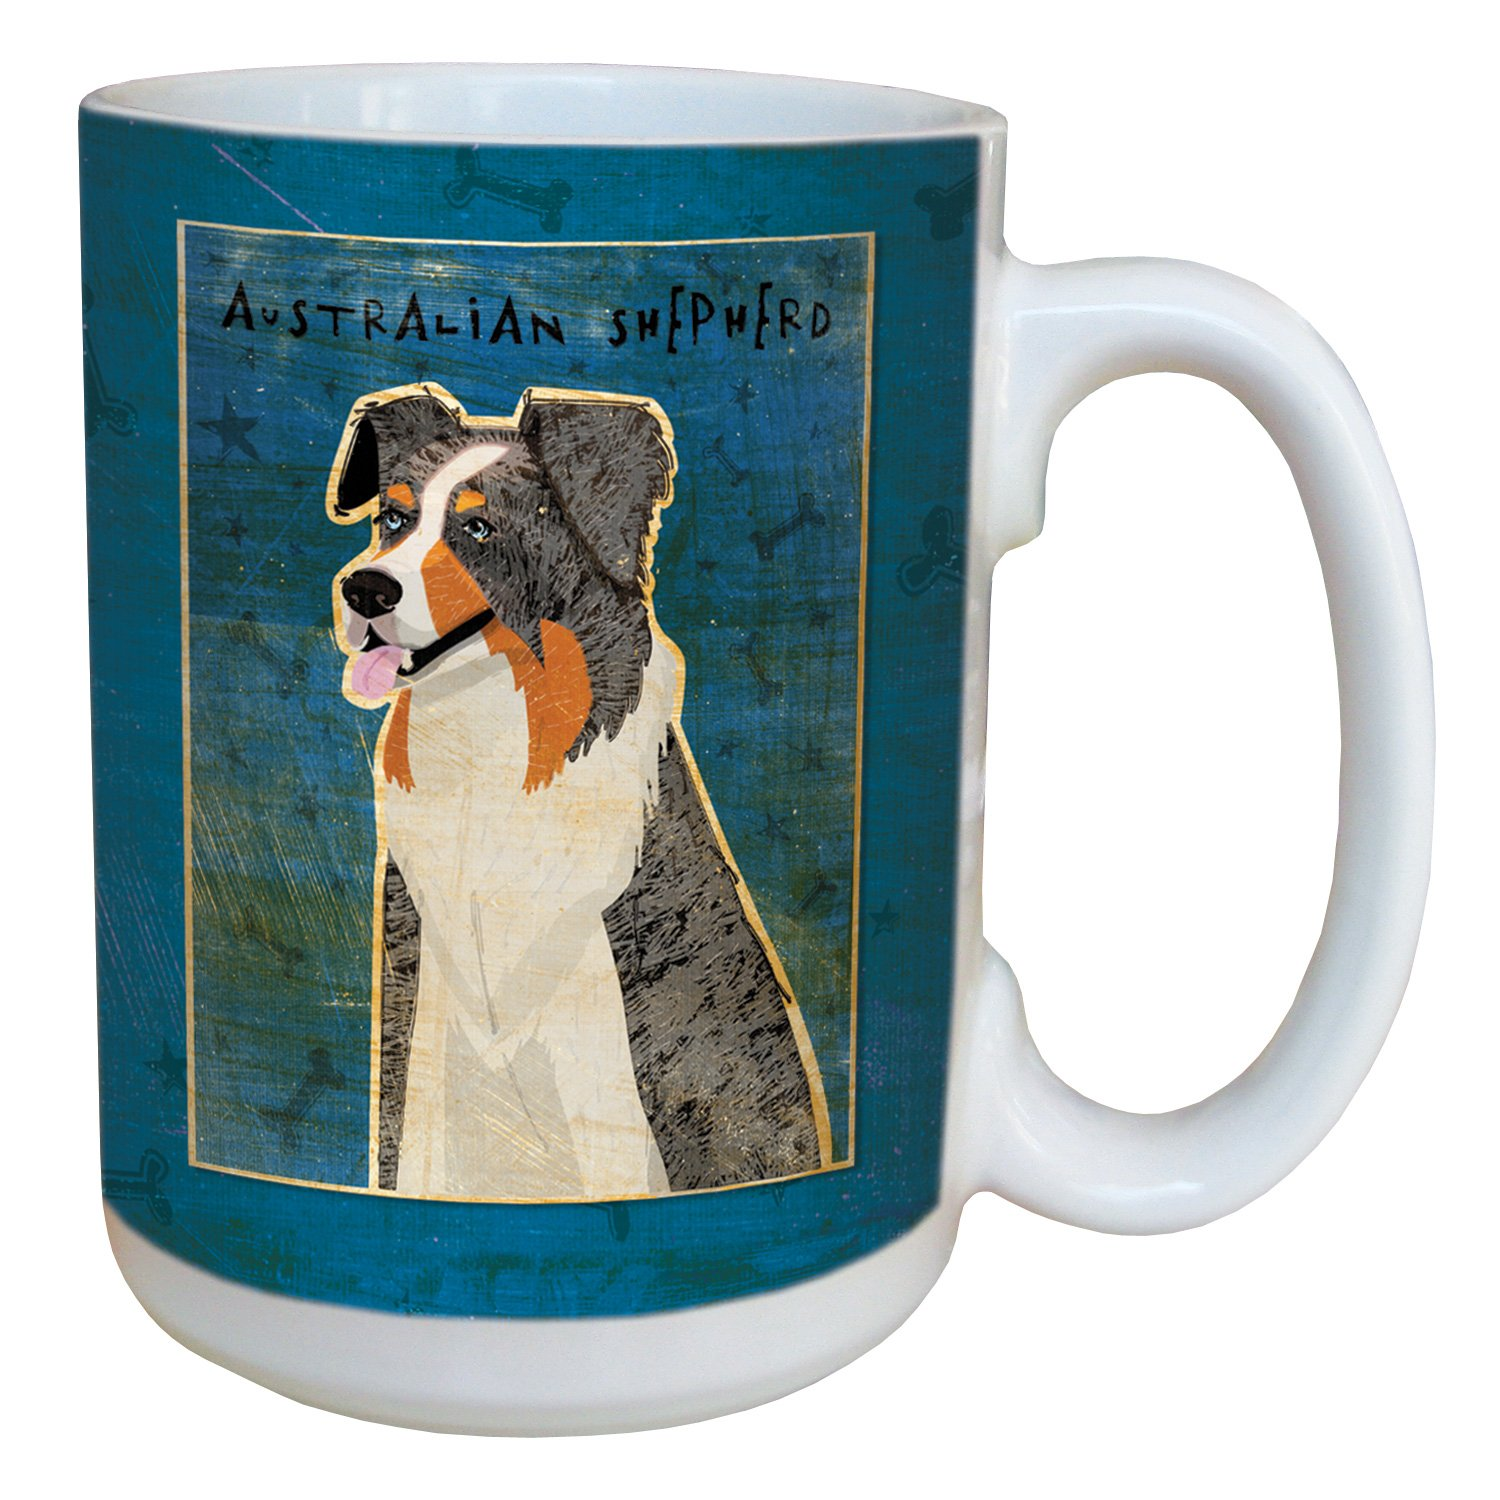 Tree-Free Greetings sg44017 Blue Merle Australian Shepherd by John W. Golden Ceramic Mug with Full-Sized Handle, 15-Ounce Tree Free lm44017